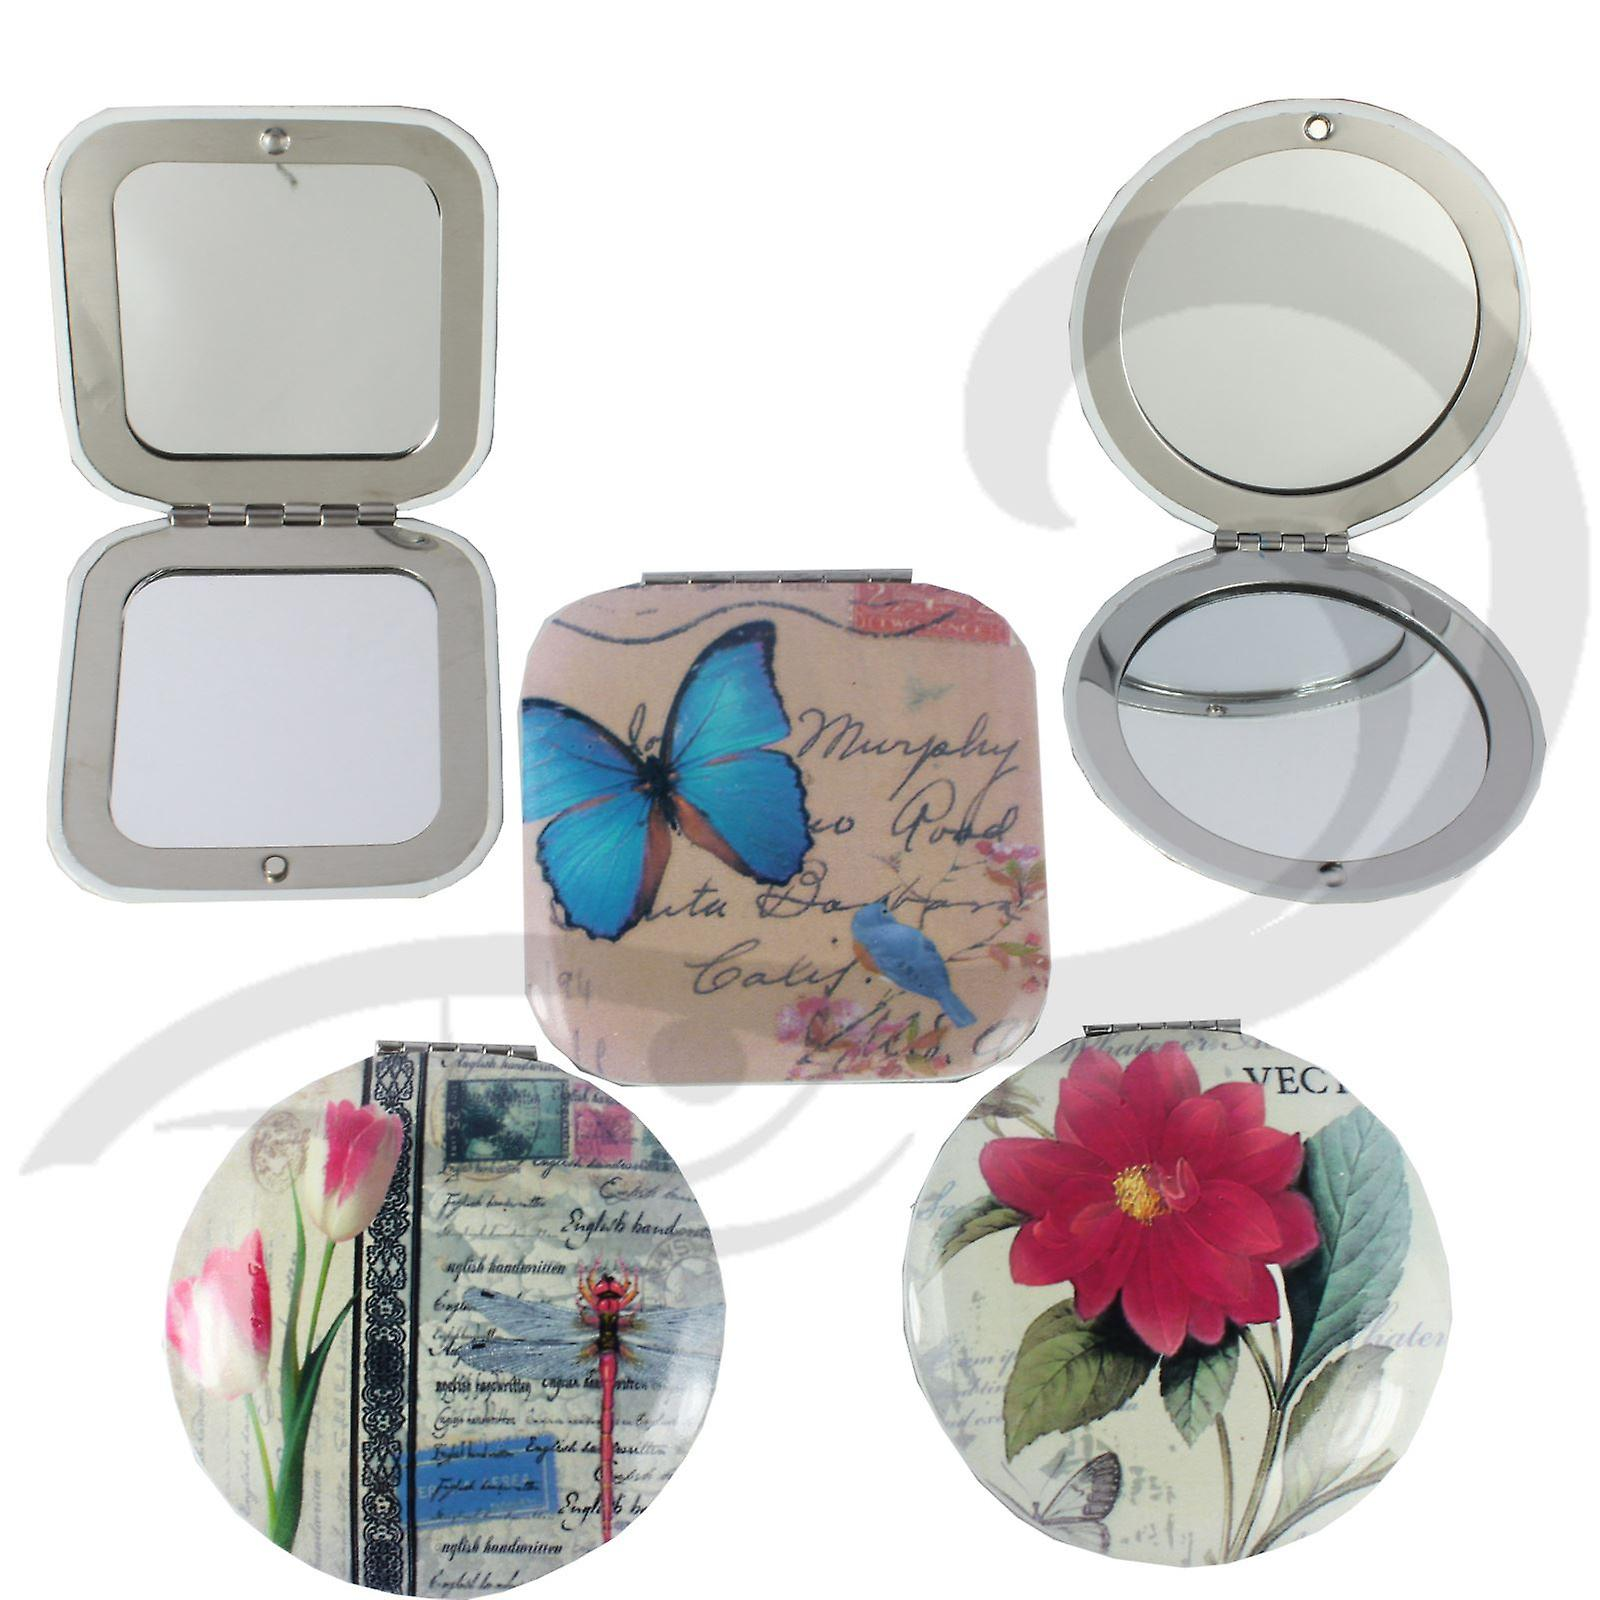 Royal Vintage Chic Travel Compact Make-Up Mirror Pocket & Travel Size